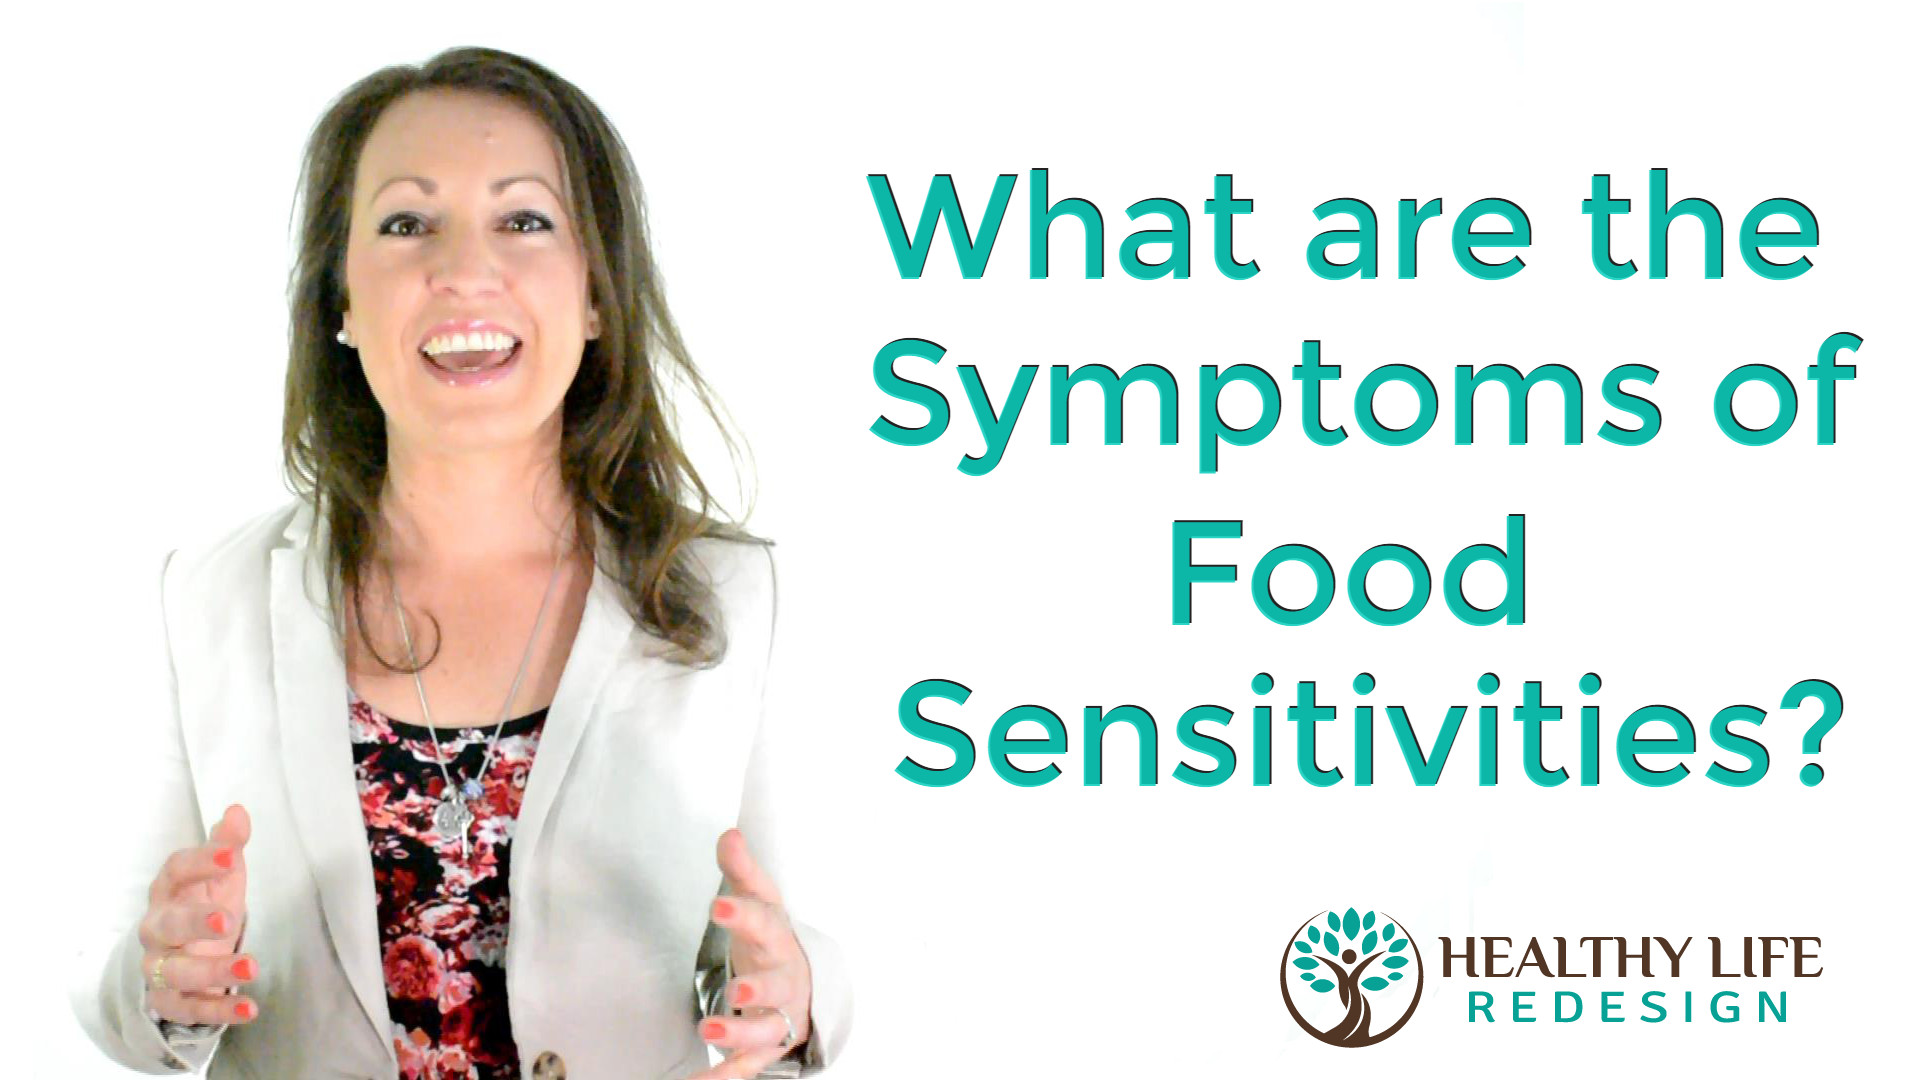 What are the symptoms of food sensitivities